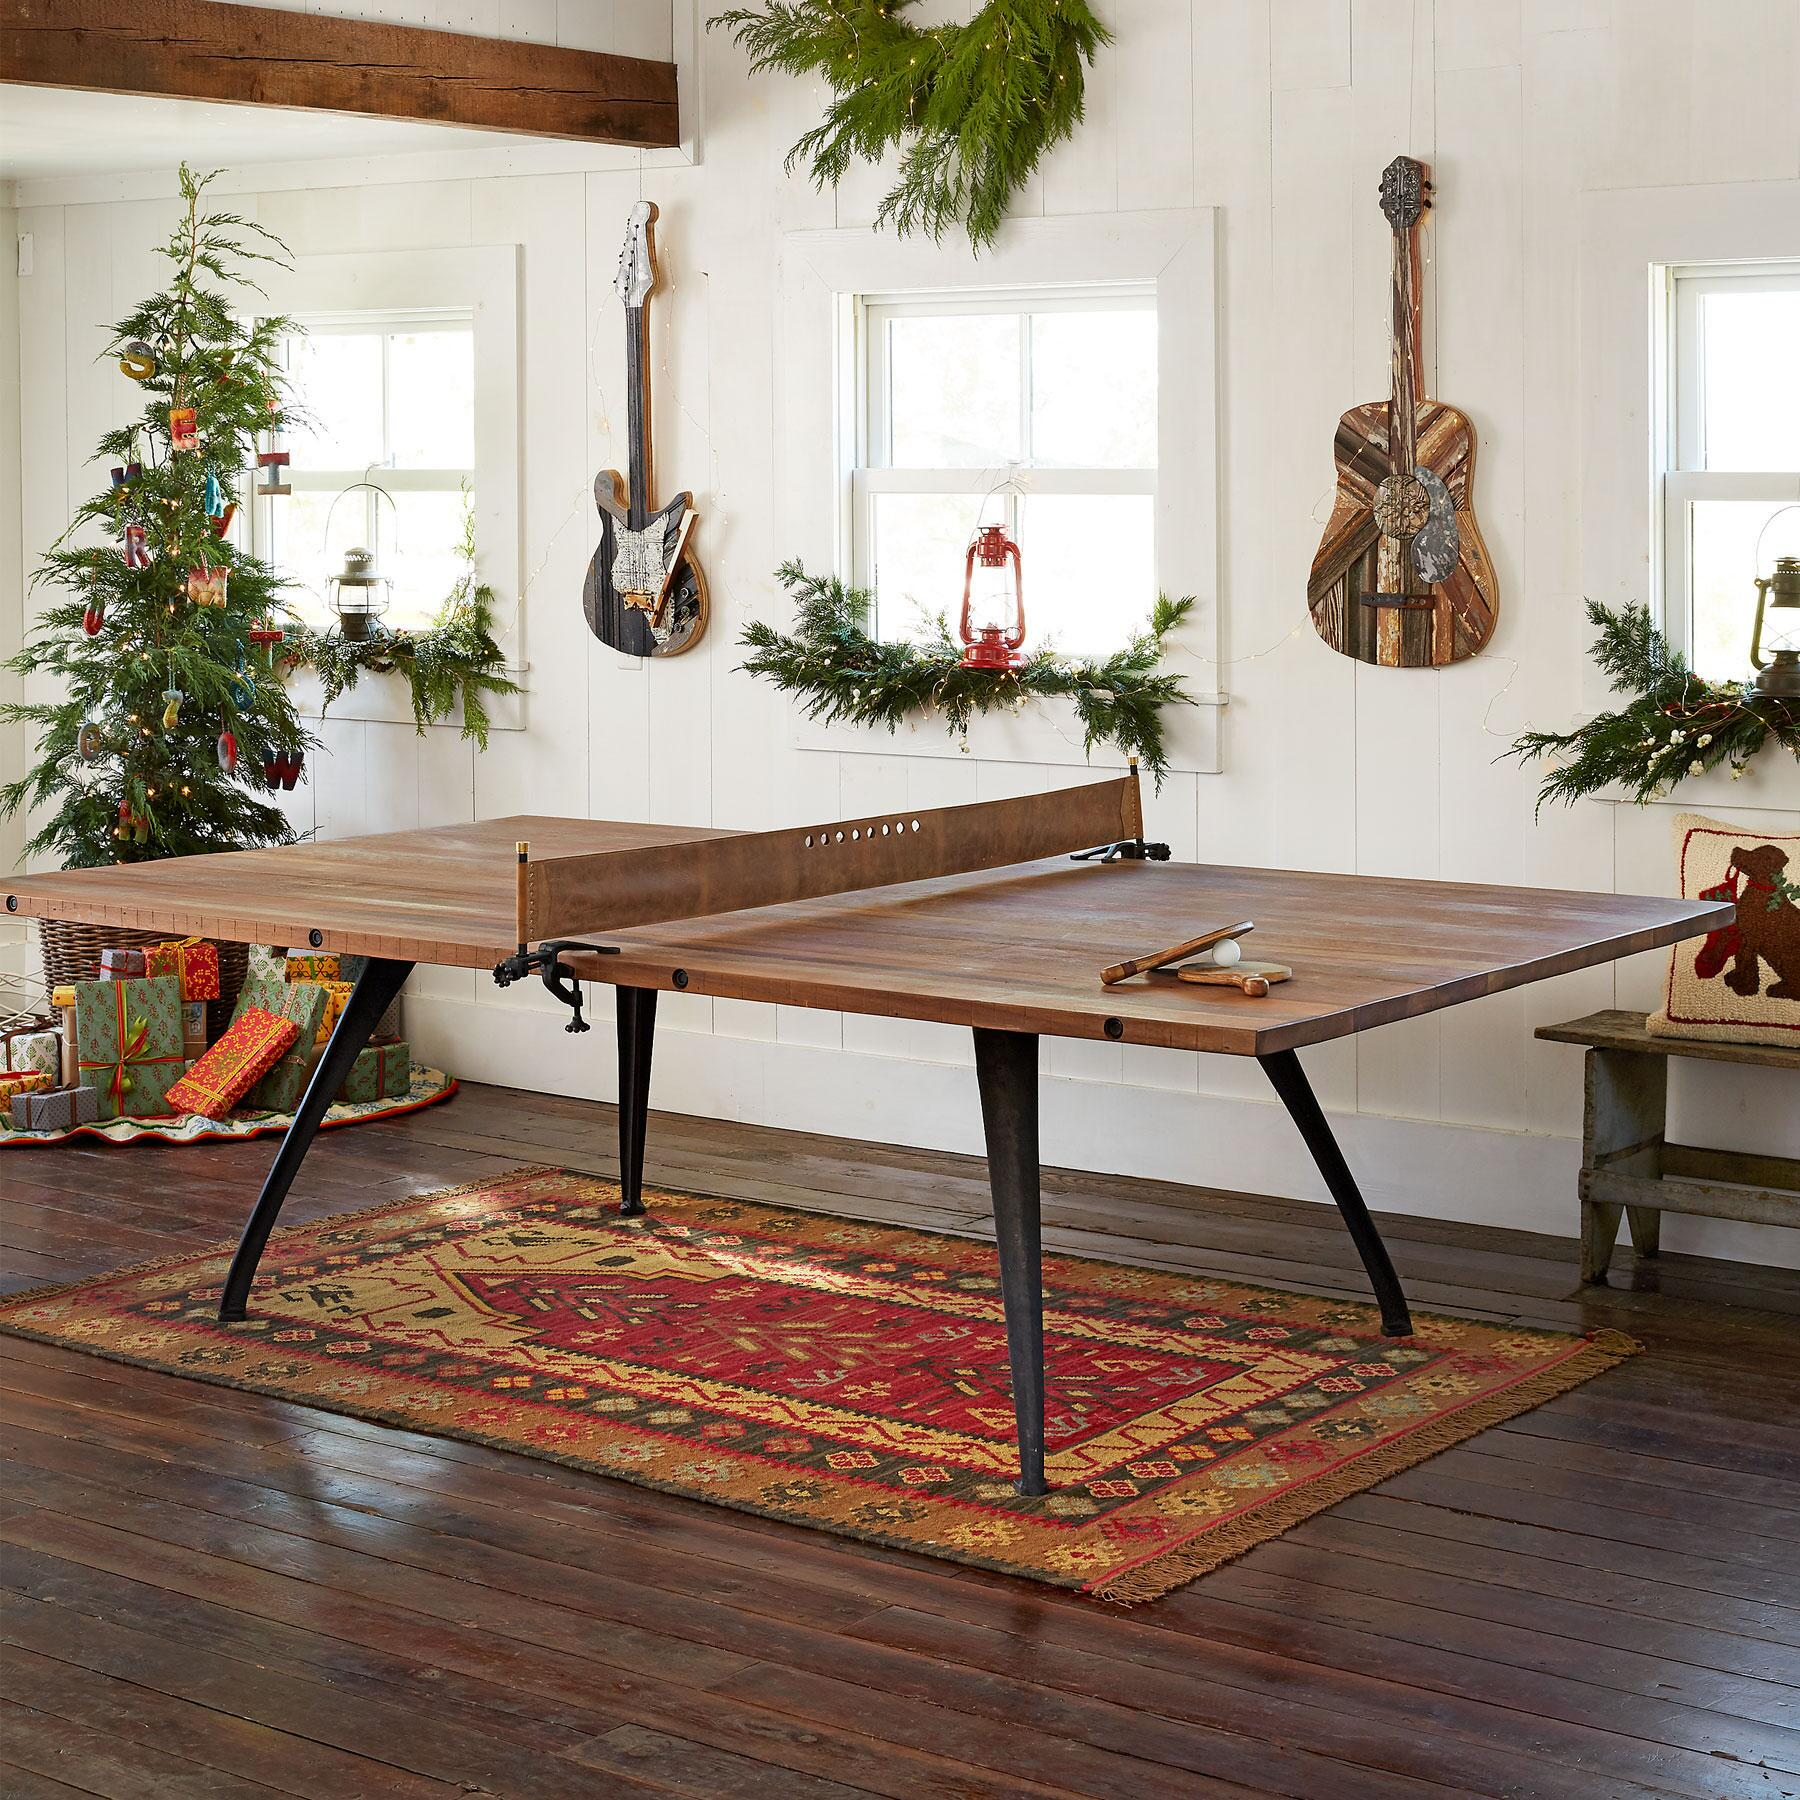 PING PONG TABLE: View 5